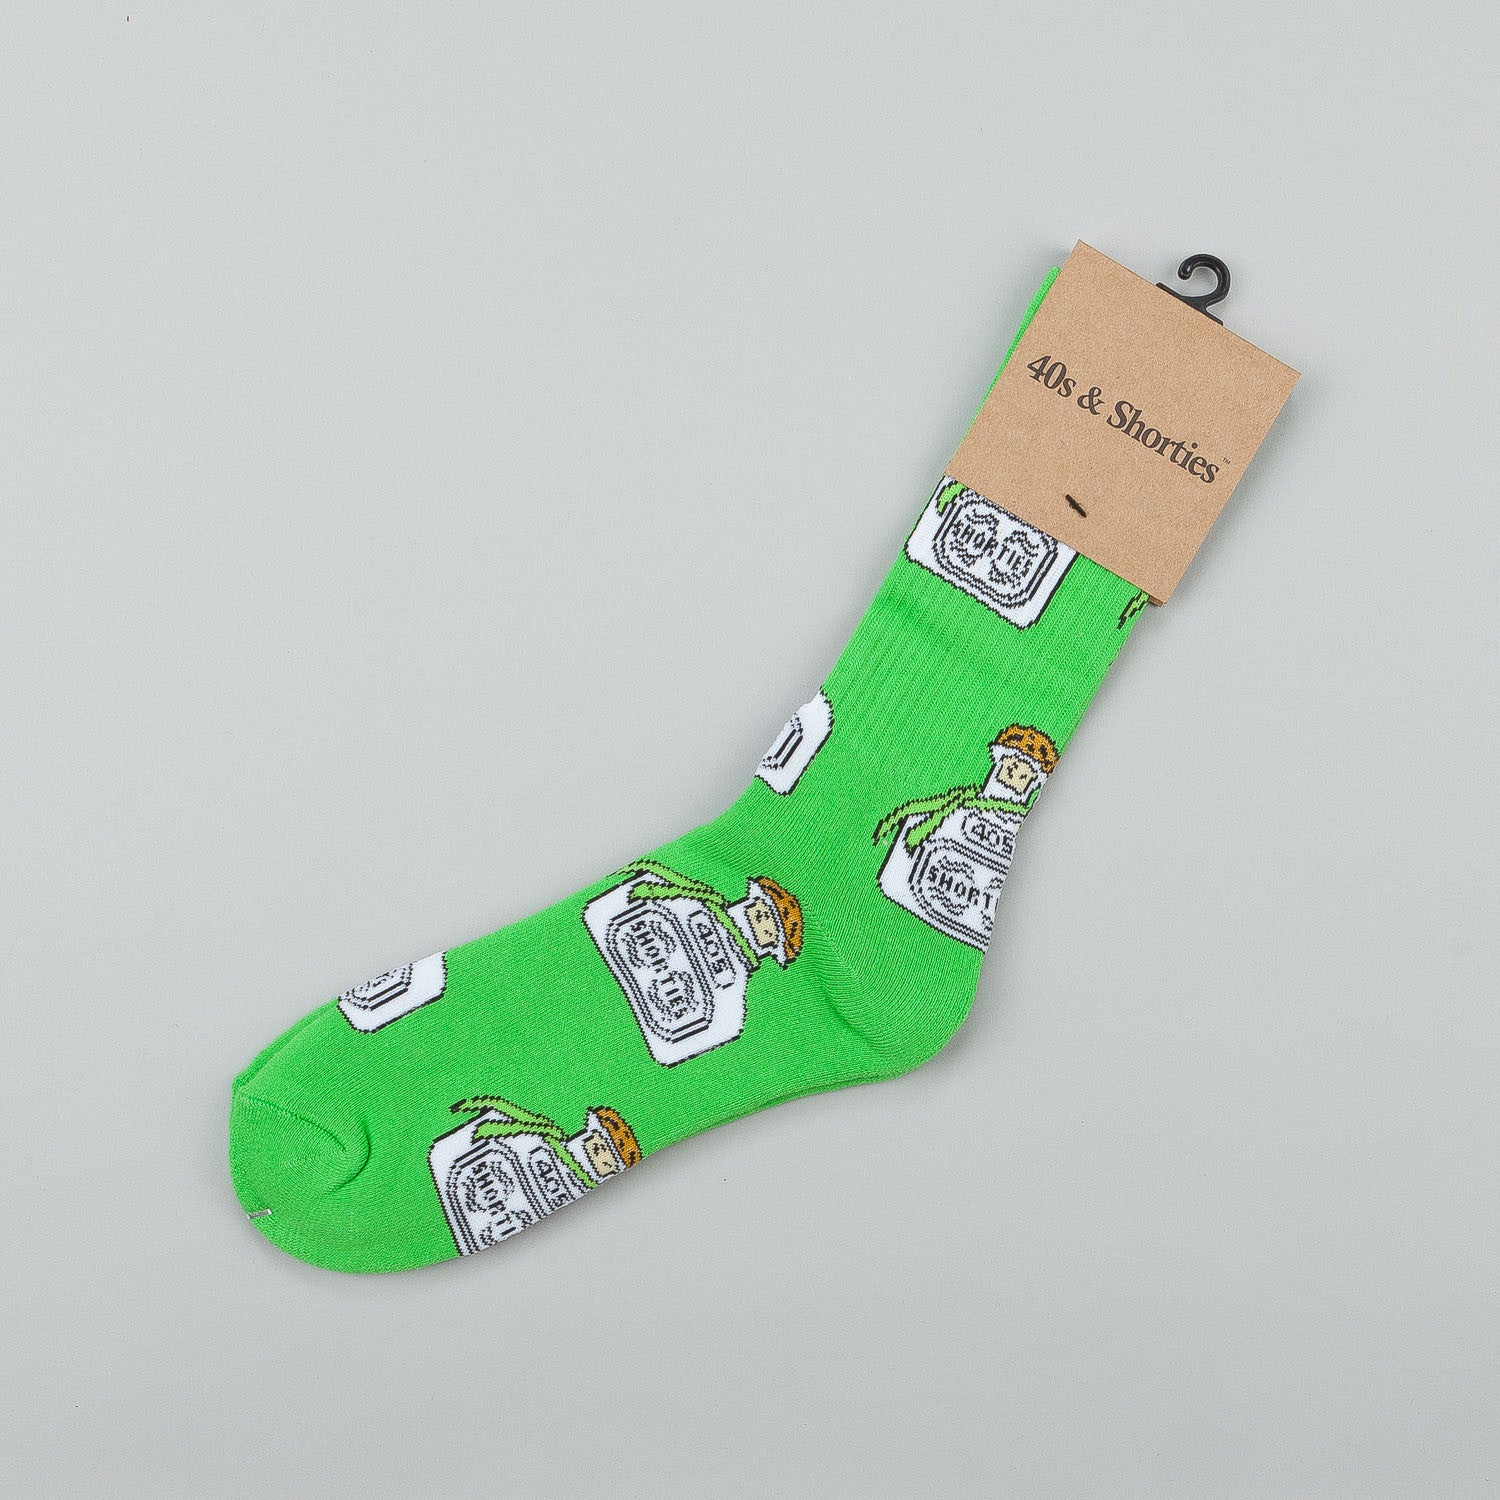 40s & Shorties Tequila Socks - Green